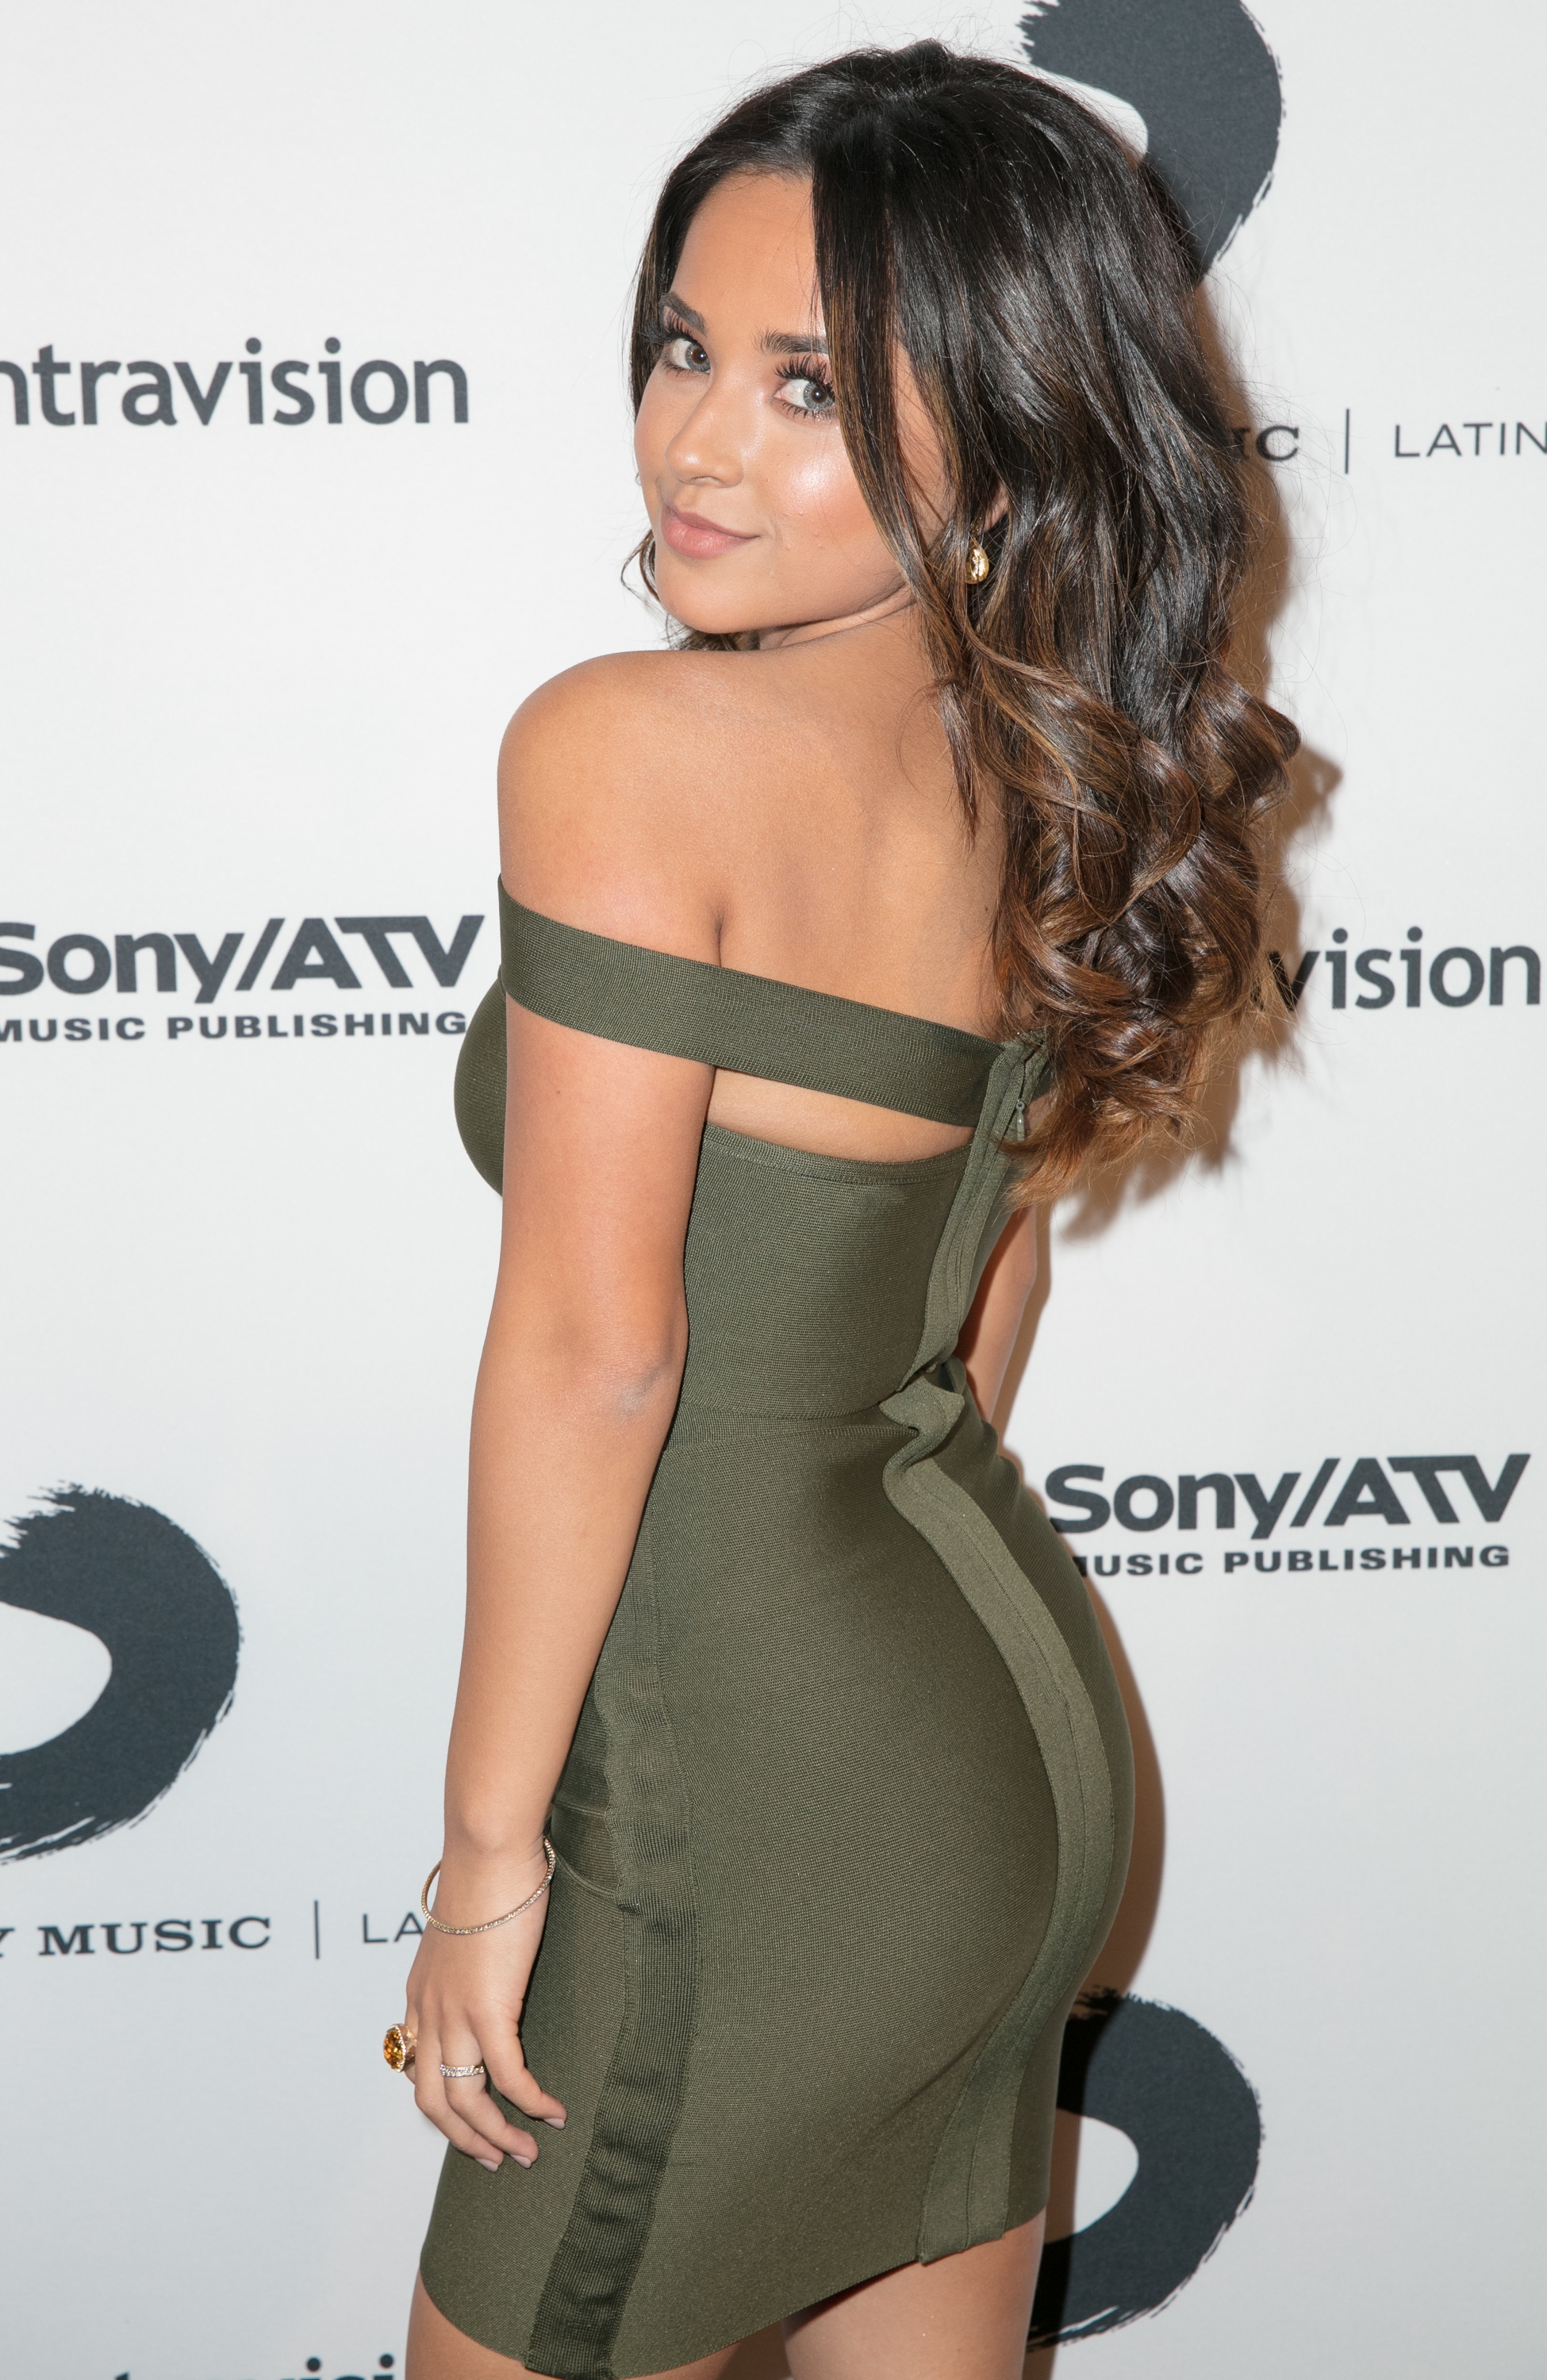 Sony Music Latin Celebrates Its Artists at Their Official Latin Grammy After Party